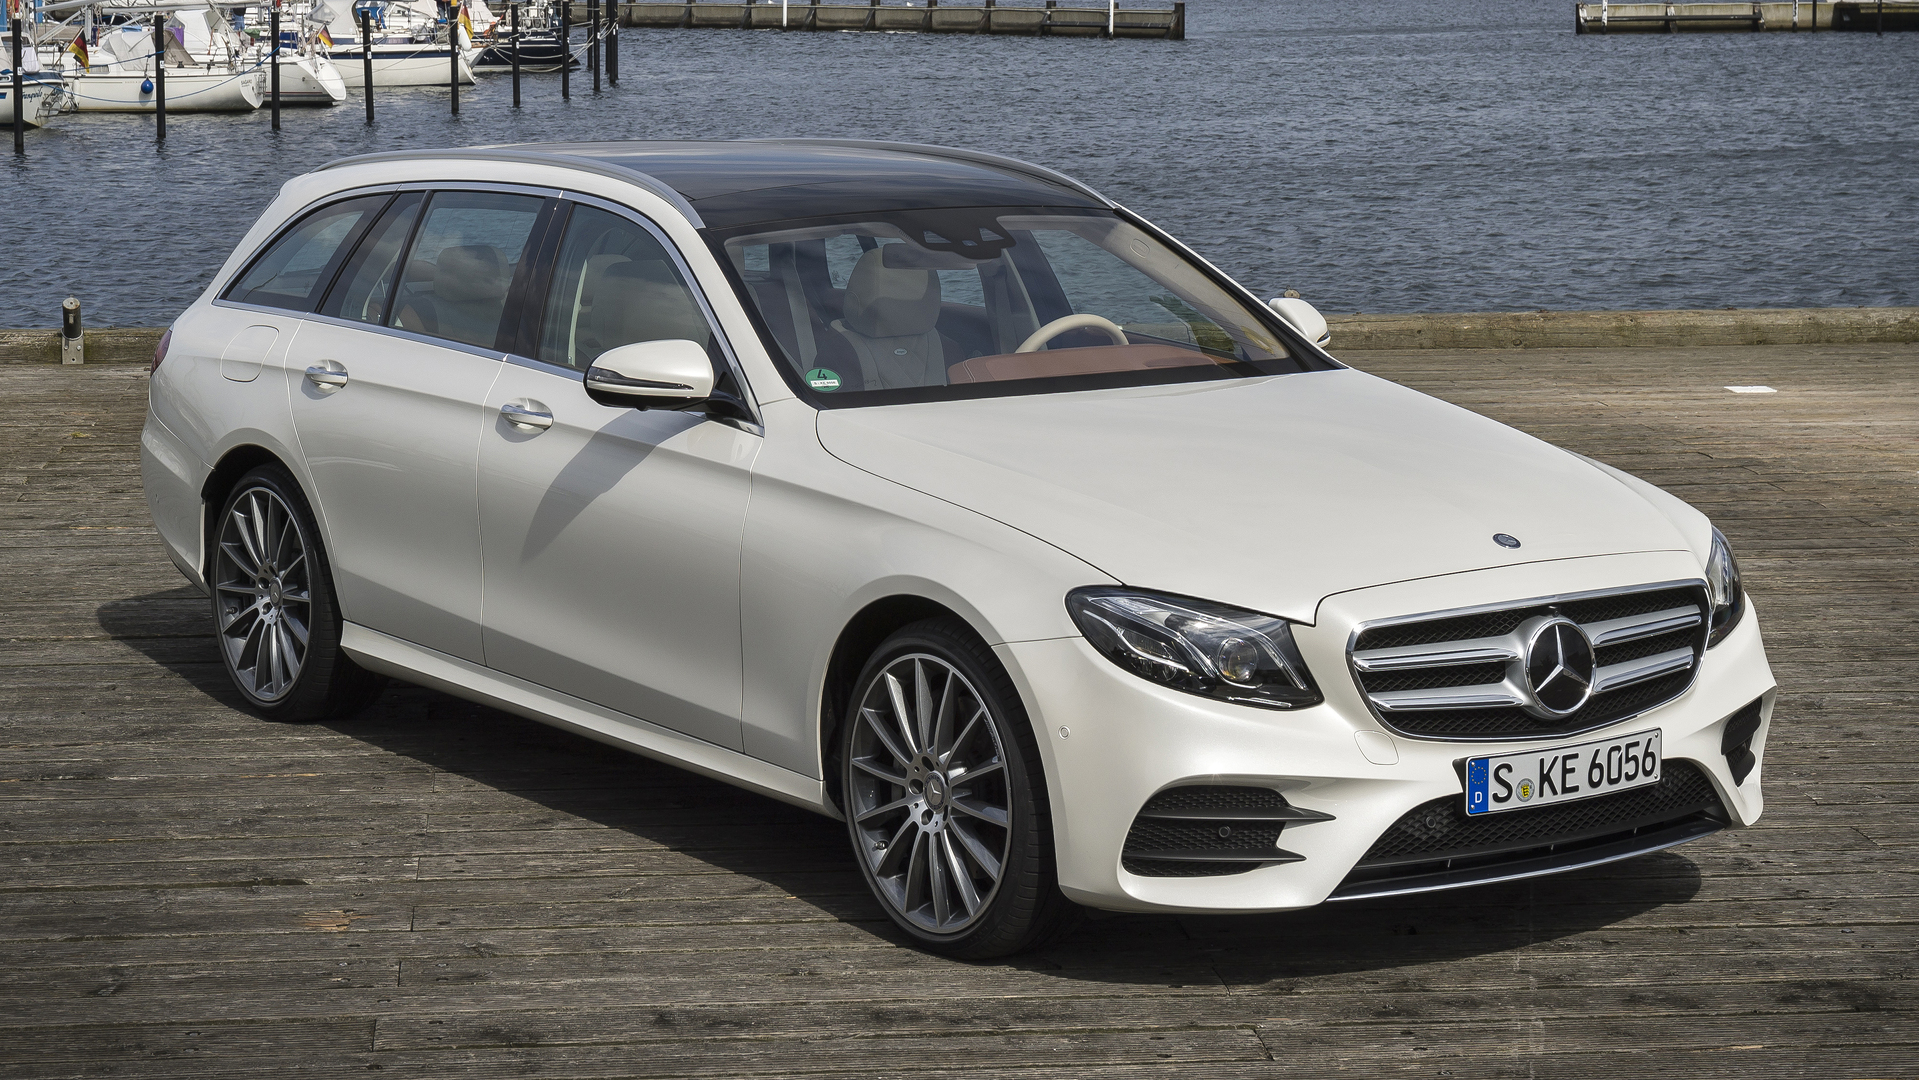 https://icdn-4.motor1.com/images/mgl/XrVWV/s1/2017-mercedes-benz-e400-wagon-review.jpg